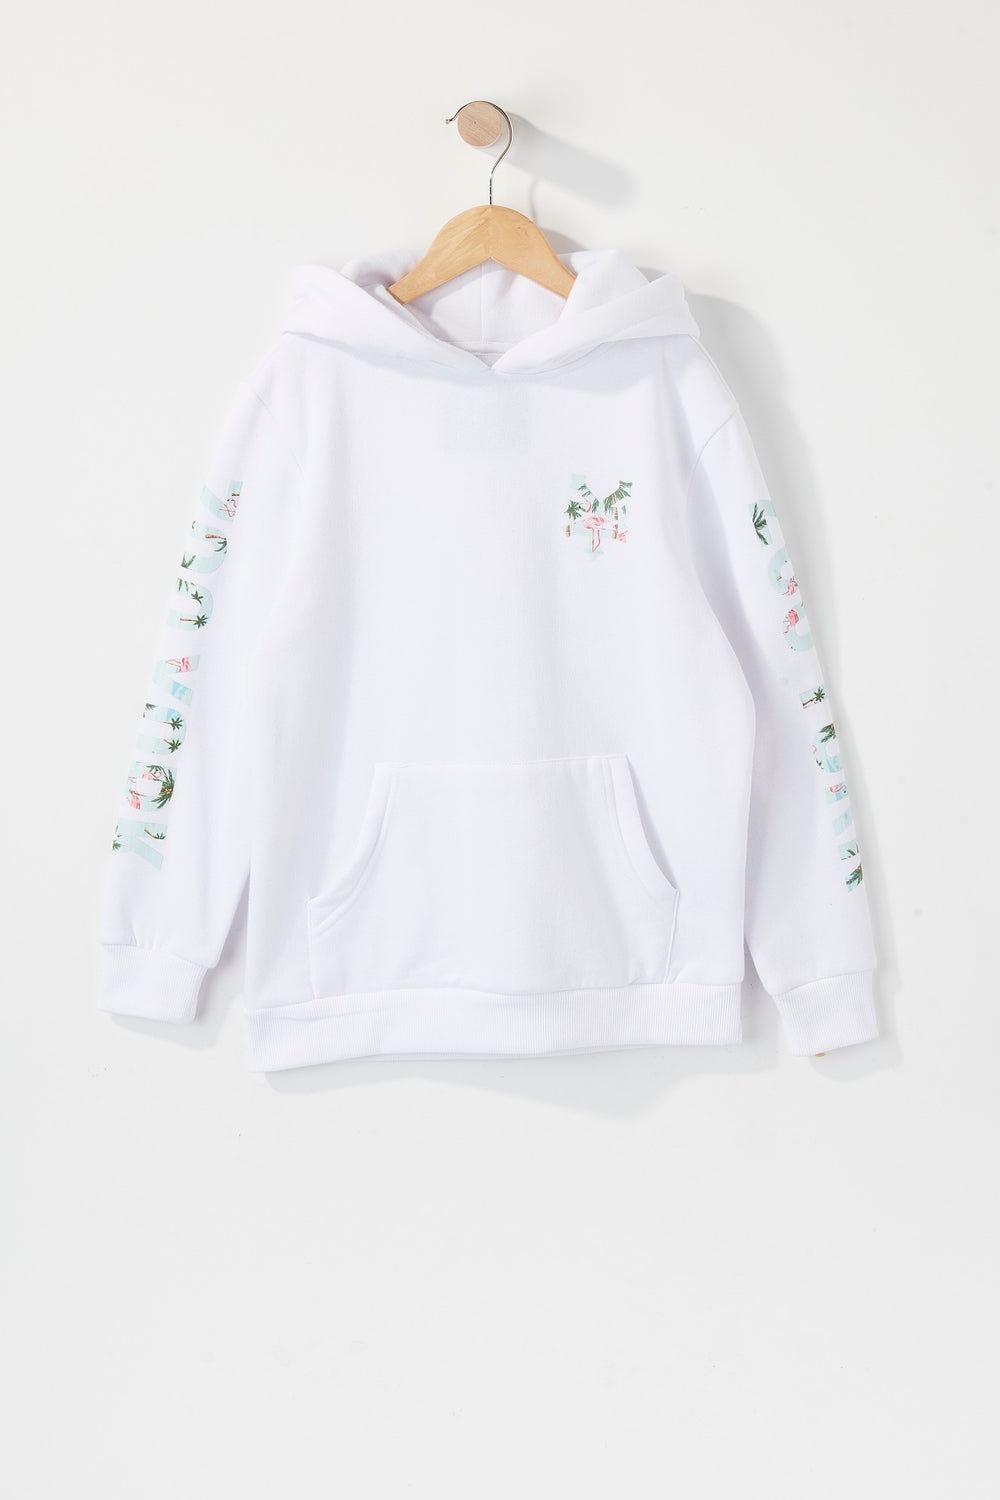 Zoo York Boys Pink Flamingo Logo Hoodie White